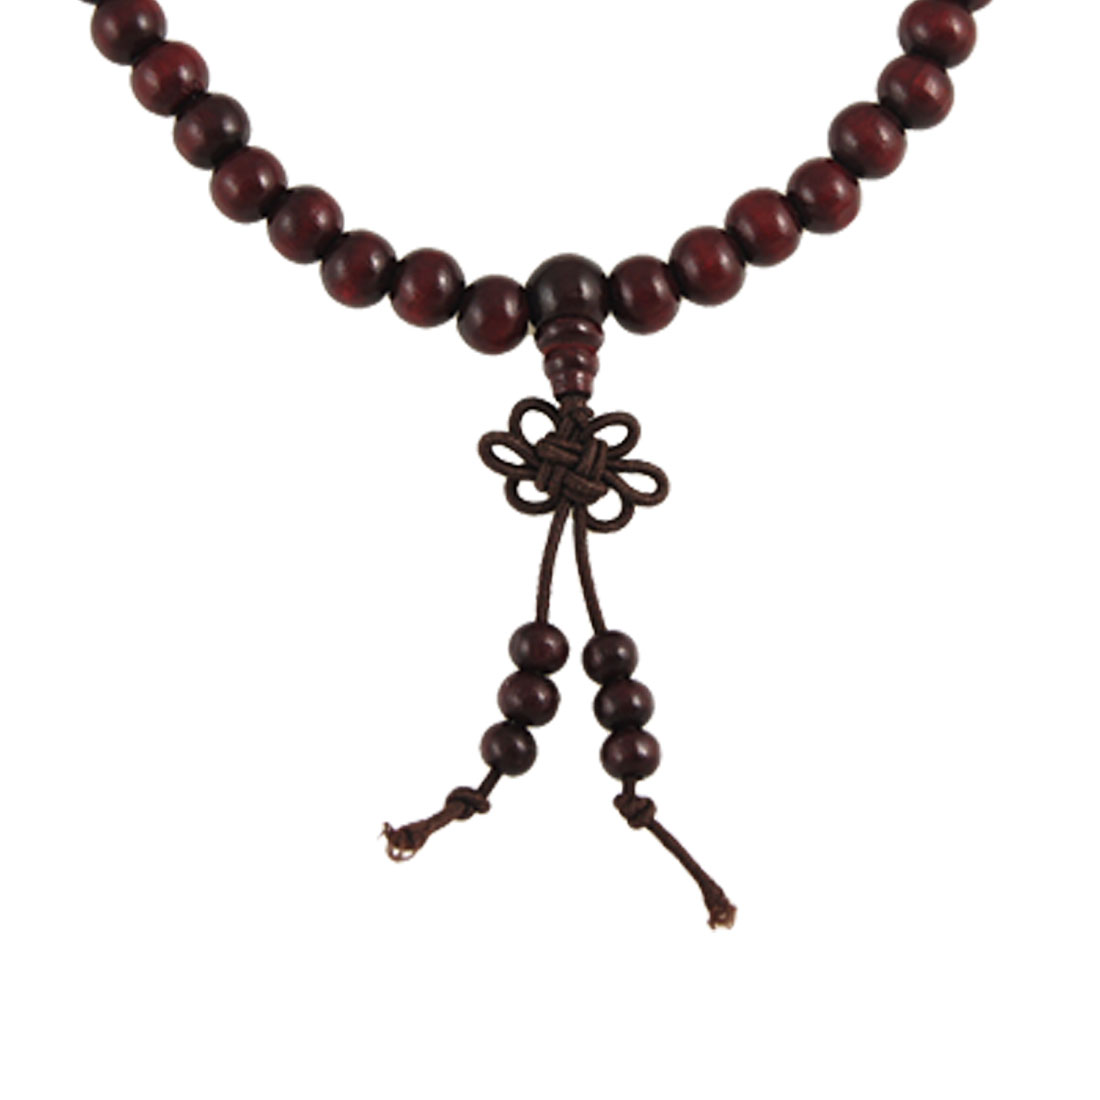 7mm Brown Sandalwood Beads Buddhist Prayer Elastic Mala Necklace